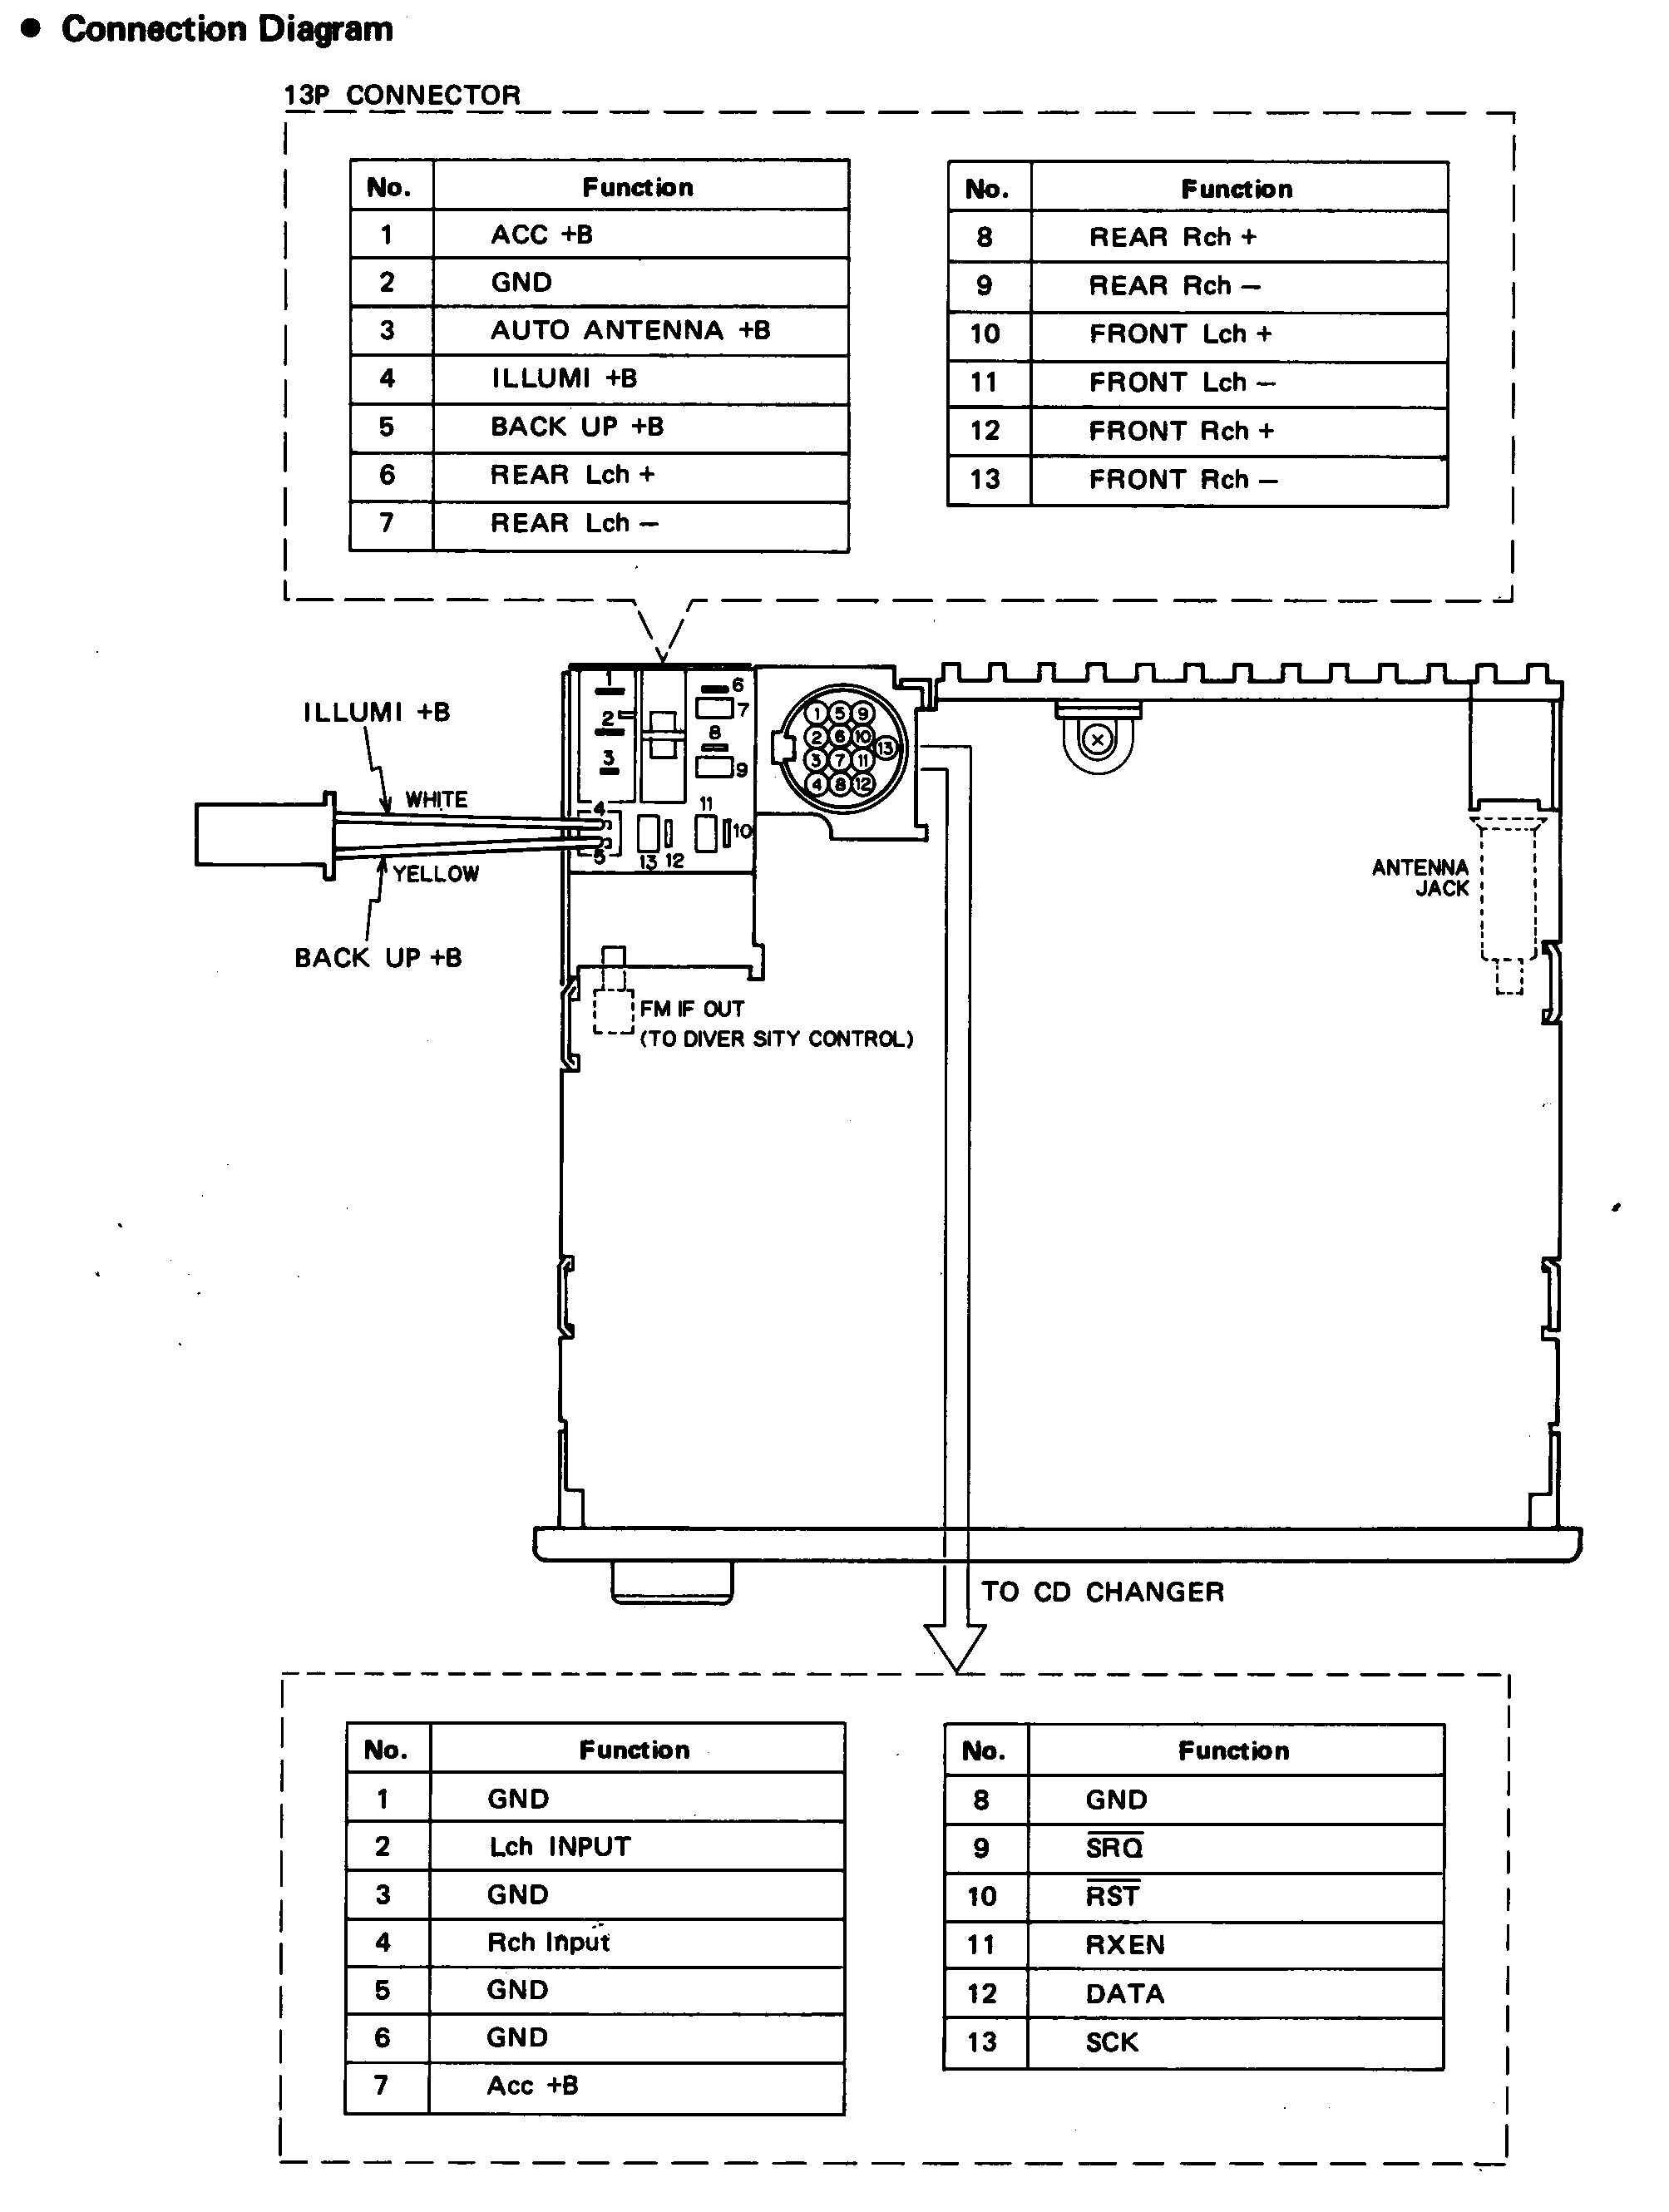 Alpine Iva 800 Car Stereo Wiring Diagram Automotive Block Diagram \u2022 Raptor  Car Stereo Wiring Diagram Alpine Iva 800 Car Stereo Wiring Diagram